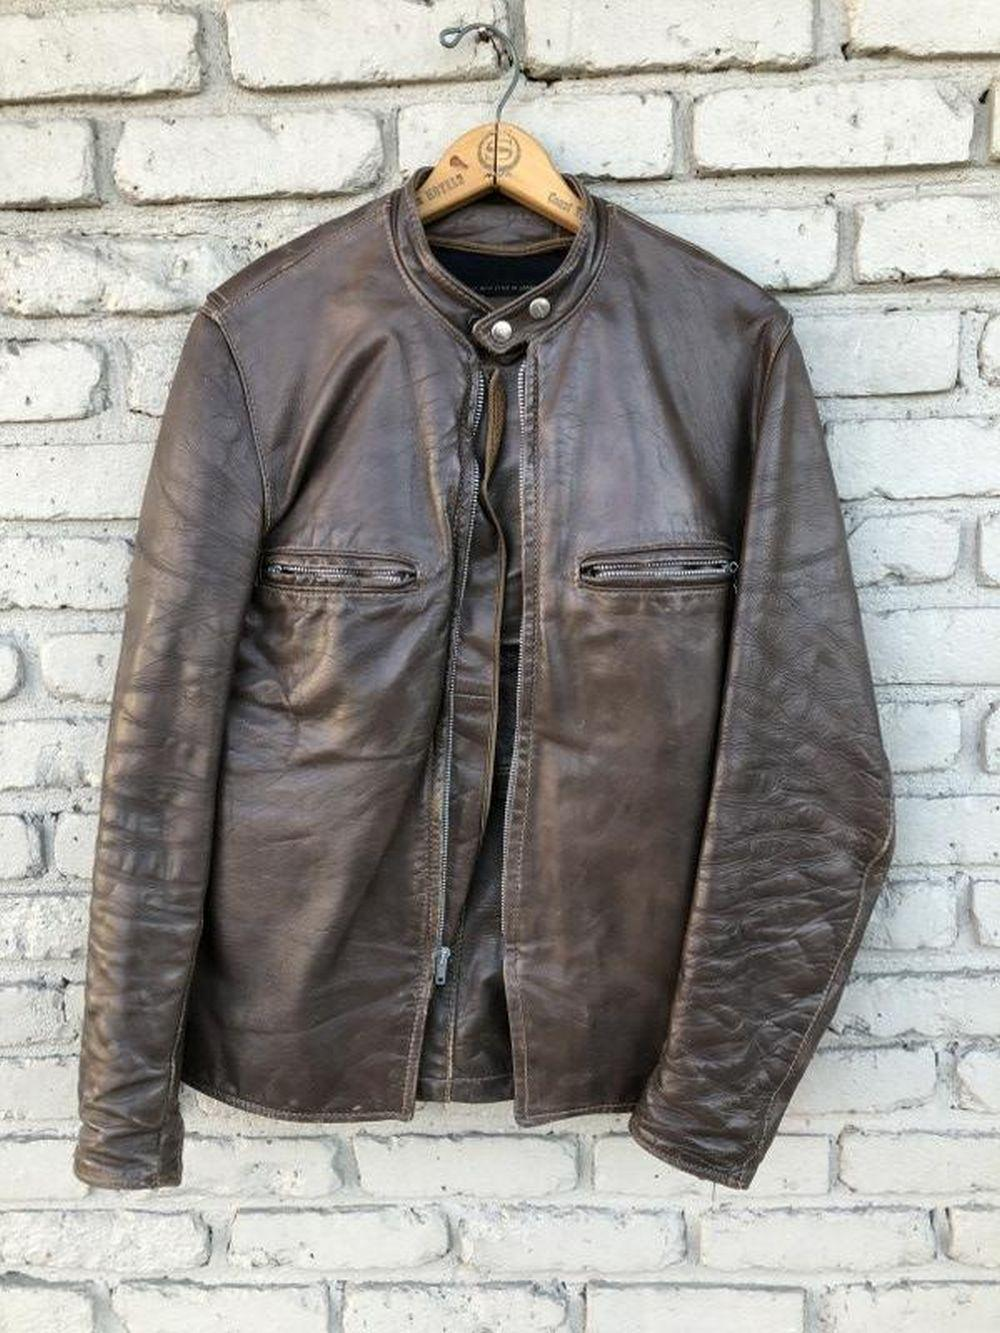 VINTAGE BROWN LEATHER MOTORCYCLE JACKET AND PANTS